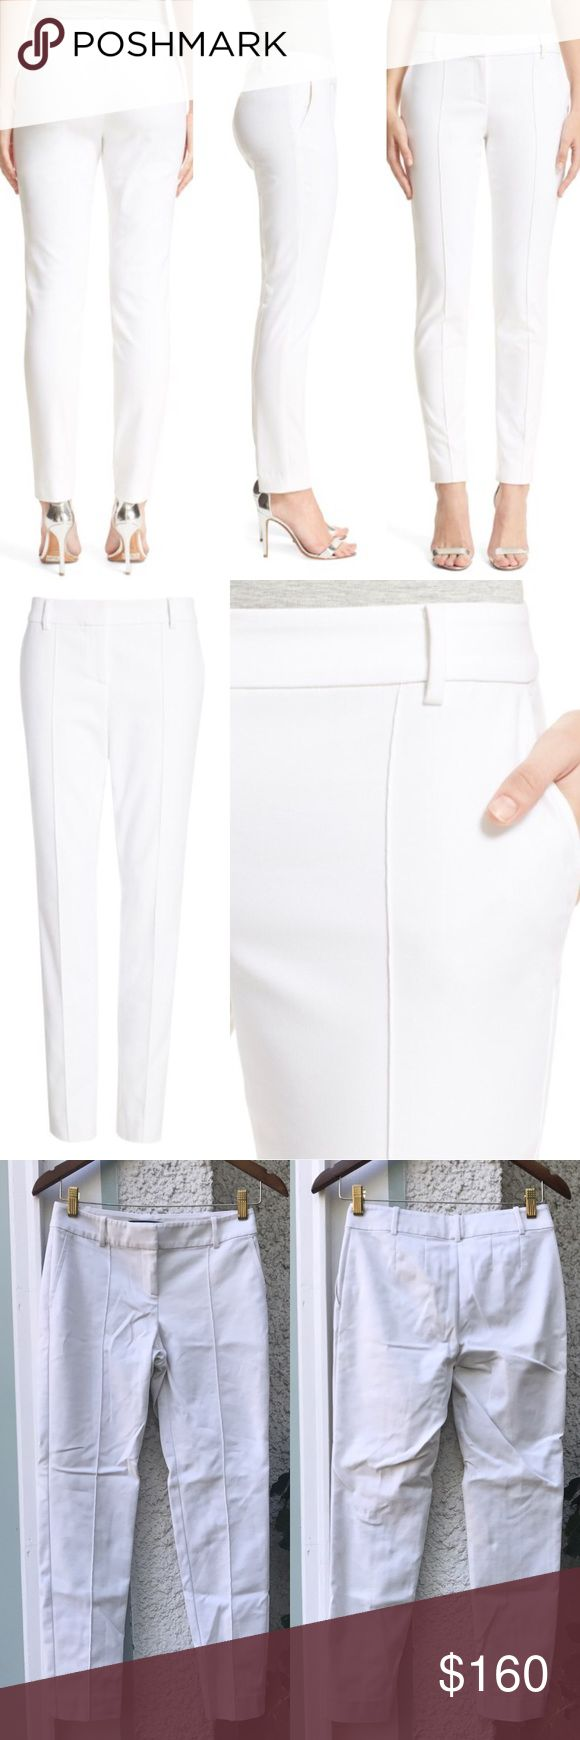 """St. John Collection Jennifer Stretch Ankle Pants St. John Collection """"Jennifer"""" Stretch Micro Ottoman Ankle Pants in """"Bianco"""". Excellent practically new condition with no flaws. Still available at Nordstrom and department stores for $495. Size 2, waist 14.5"""", hips 17.5"""", rise 7.5"""", inseam 28.5"""". Measurements are approximate and with the pants laid flat. St. John Collection Pants Ankle & Cropped"""